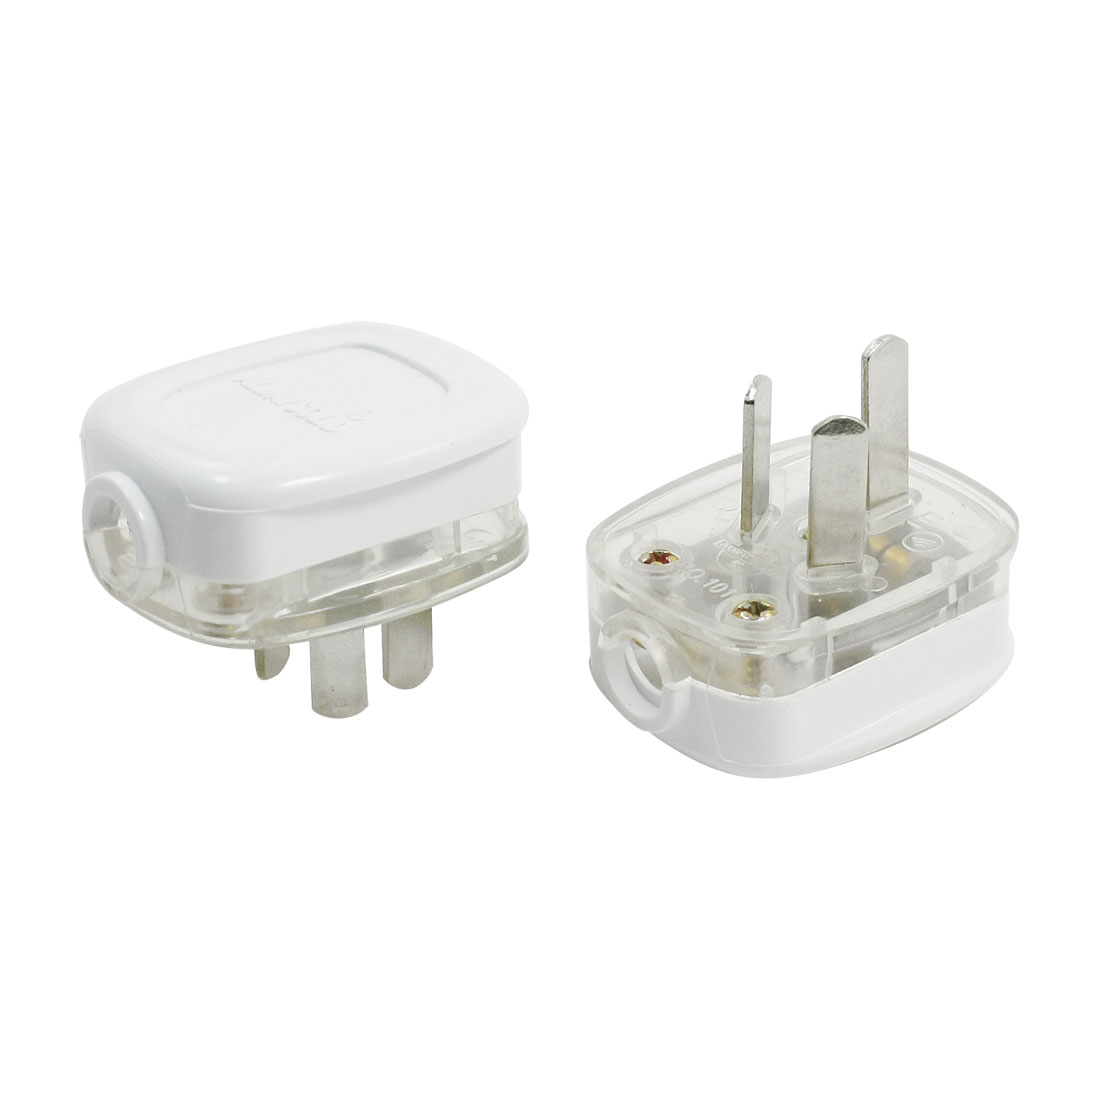 AC 250V 10A AU Plug Home Power Adapter Connector 2pcs for 10mm Cord Cable